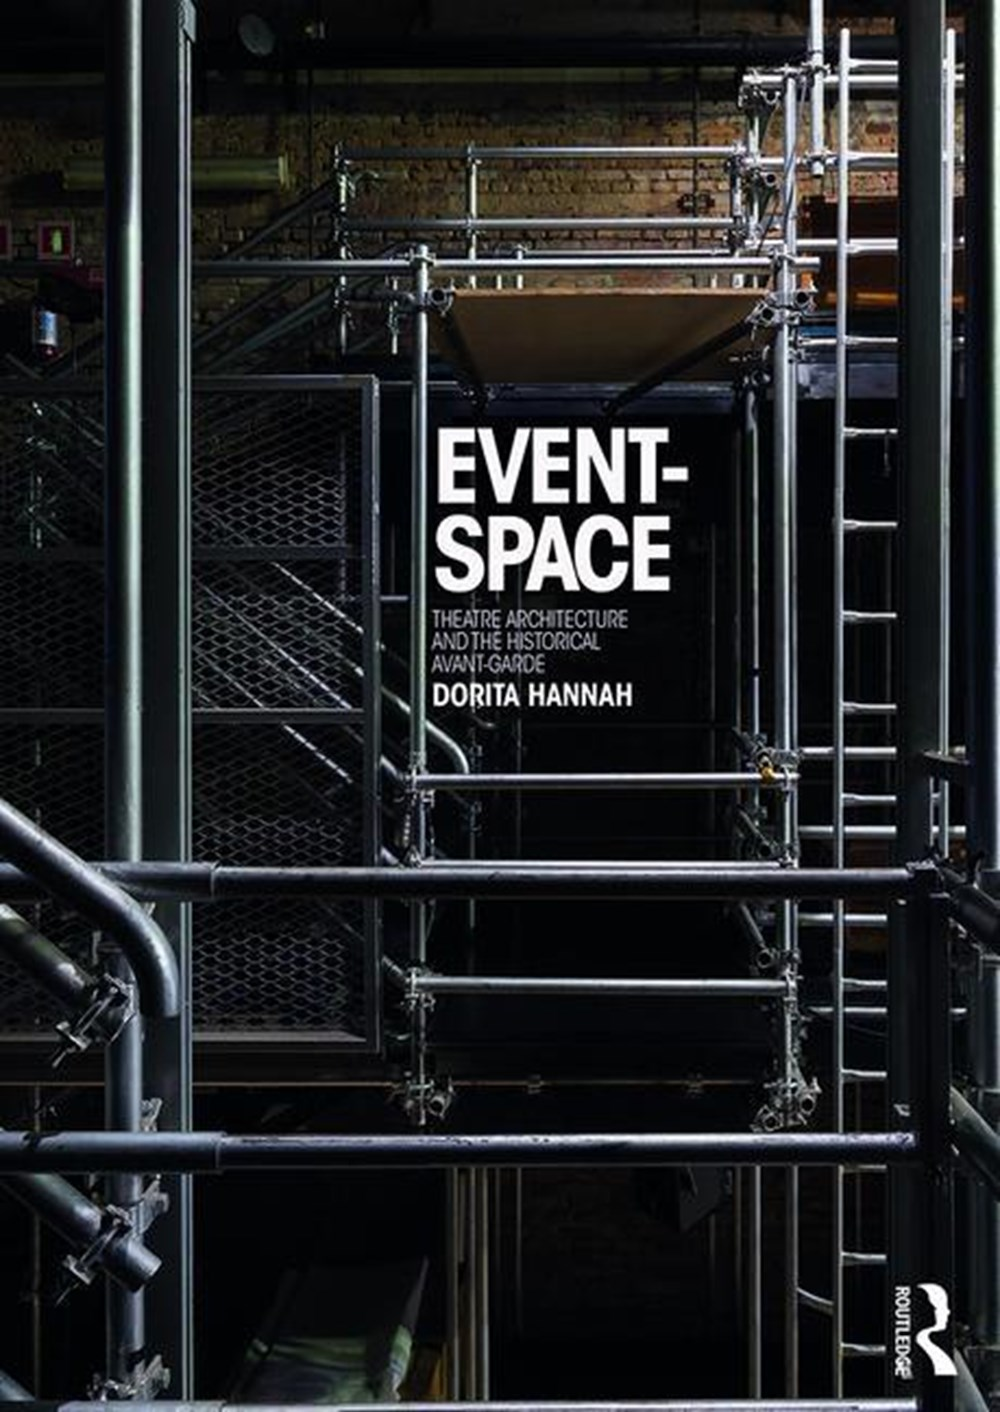 Event-Space Theatre Architecture and the Historical Avant-Garde